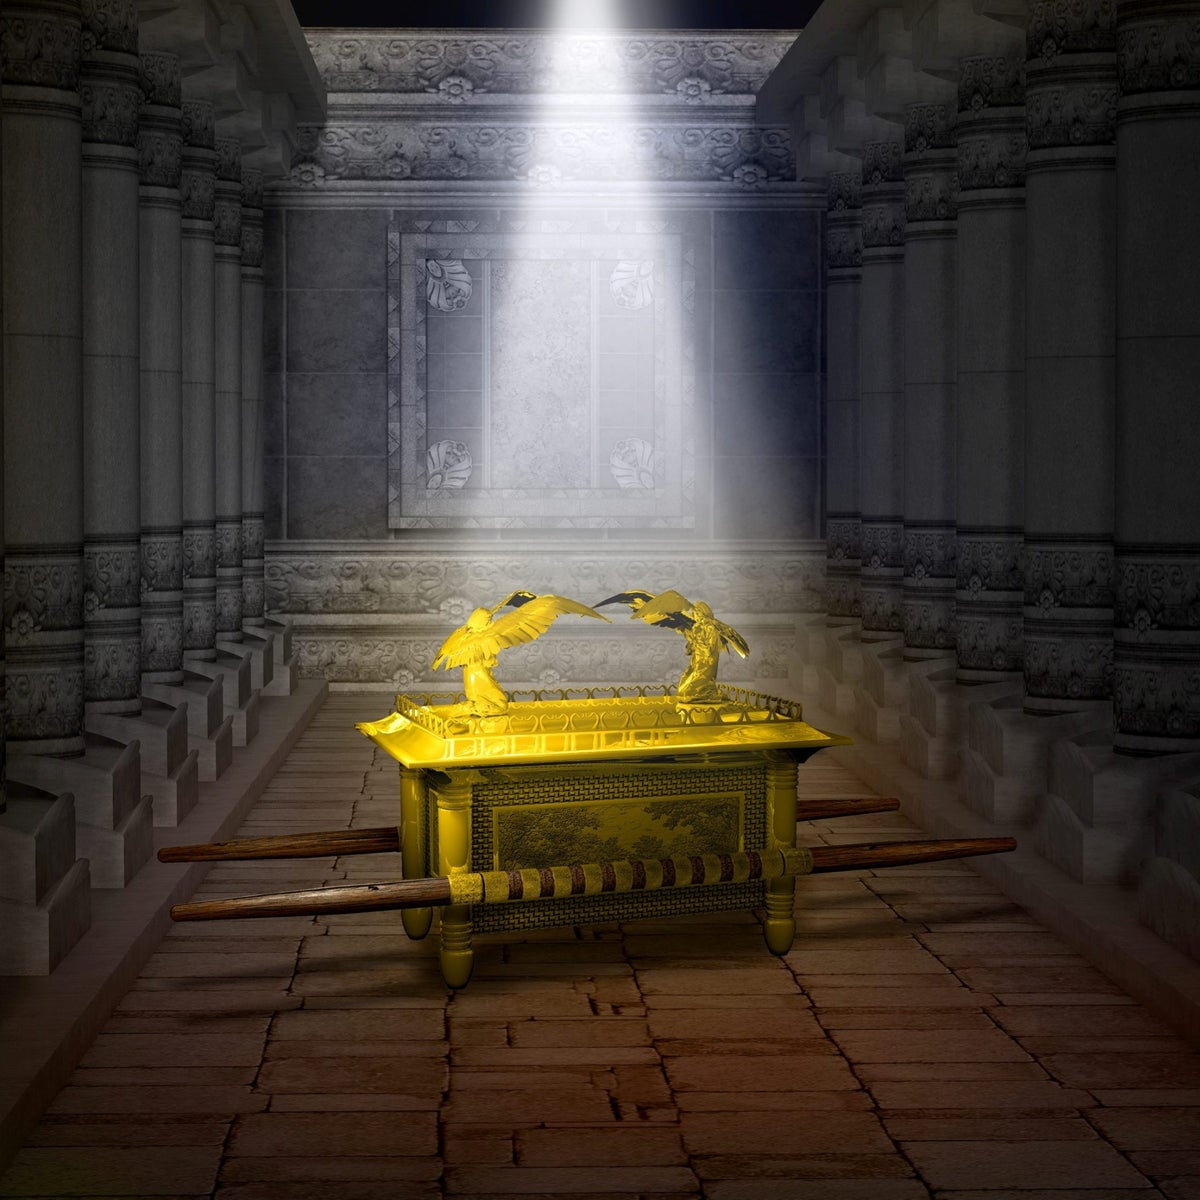 Illustration of the Ark of the Covenant inside the Holy Temple.